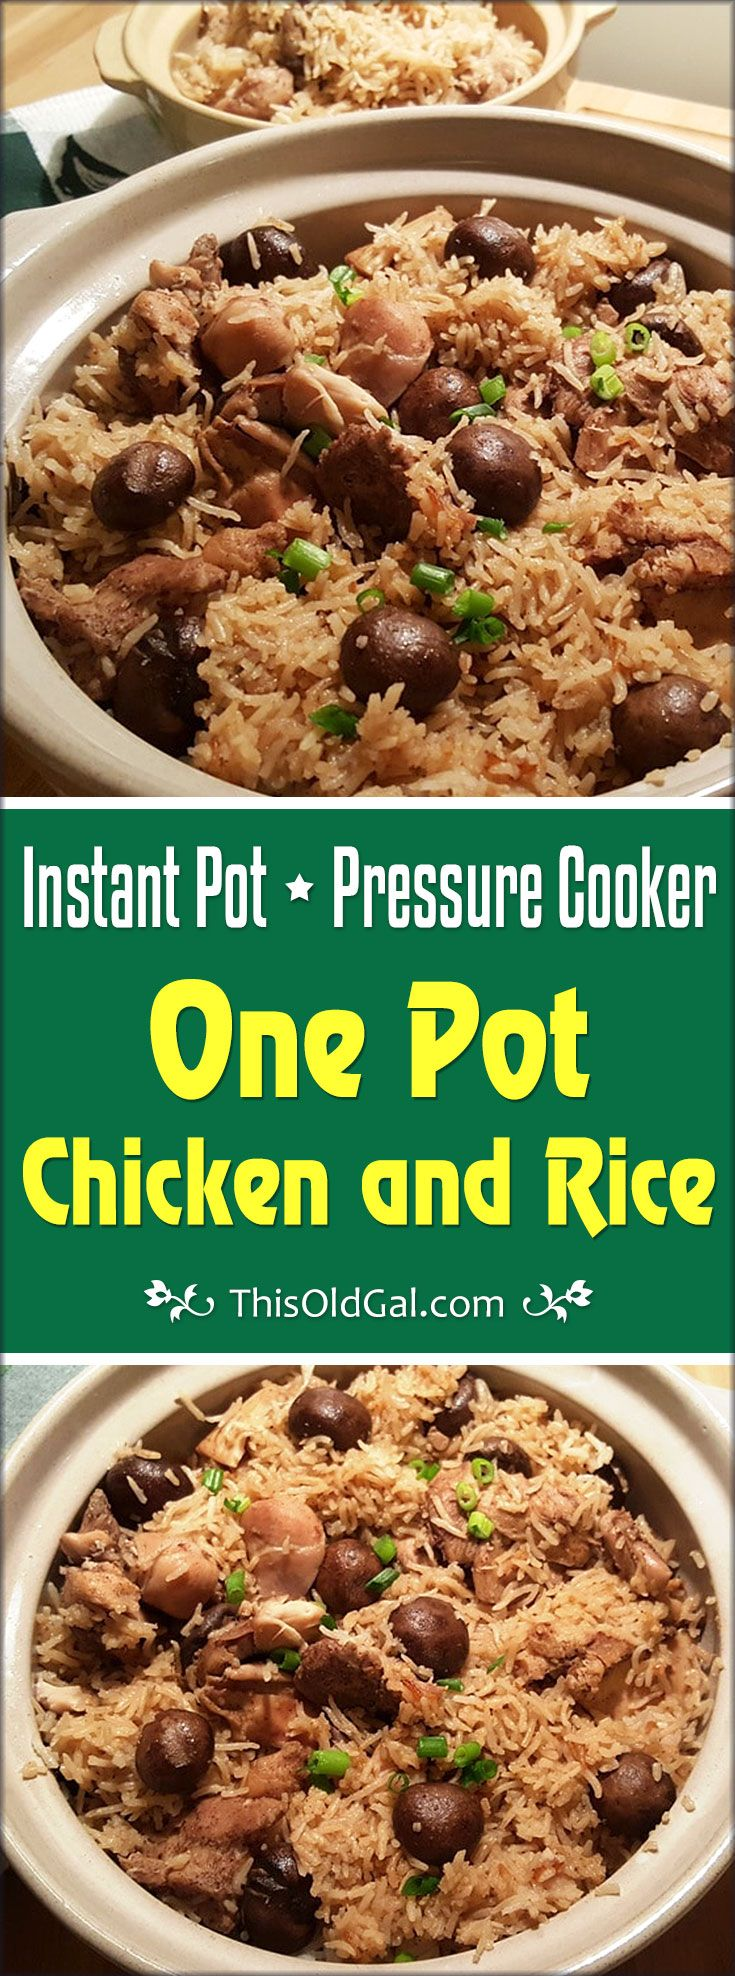 Pressure Cooker One Pot Chicken and Rice is an easy one pot meal.  Freezing chicken with the marinade will free up your time for future meals. via @thisoldgalcooks